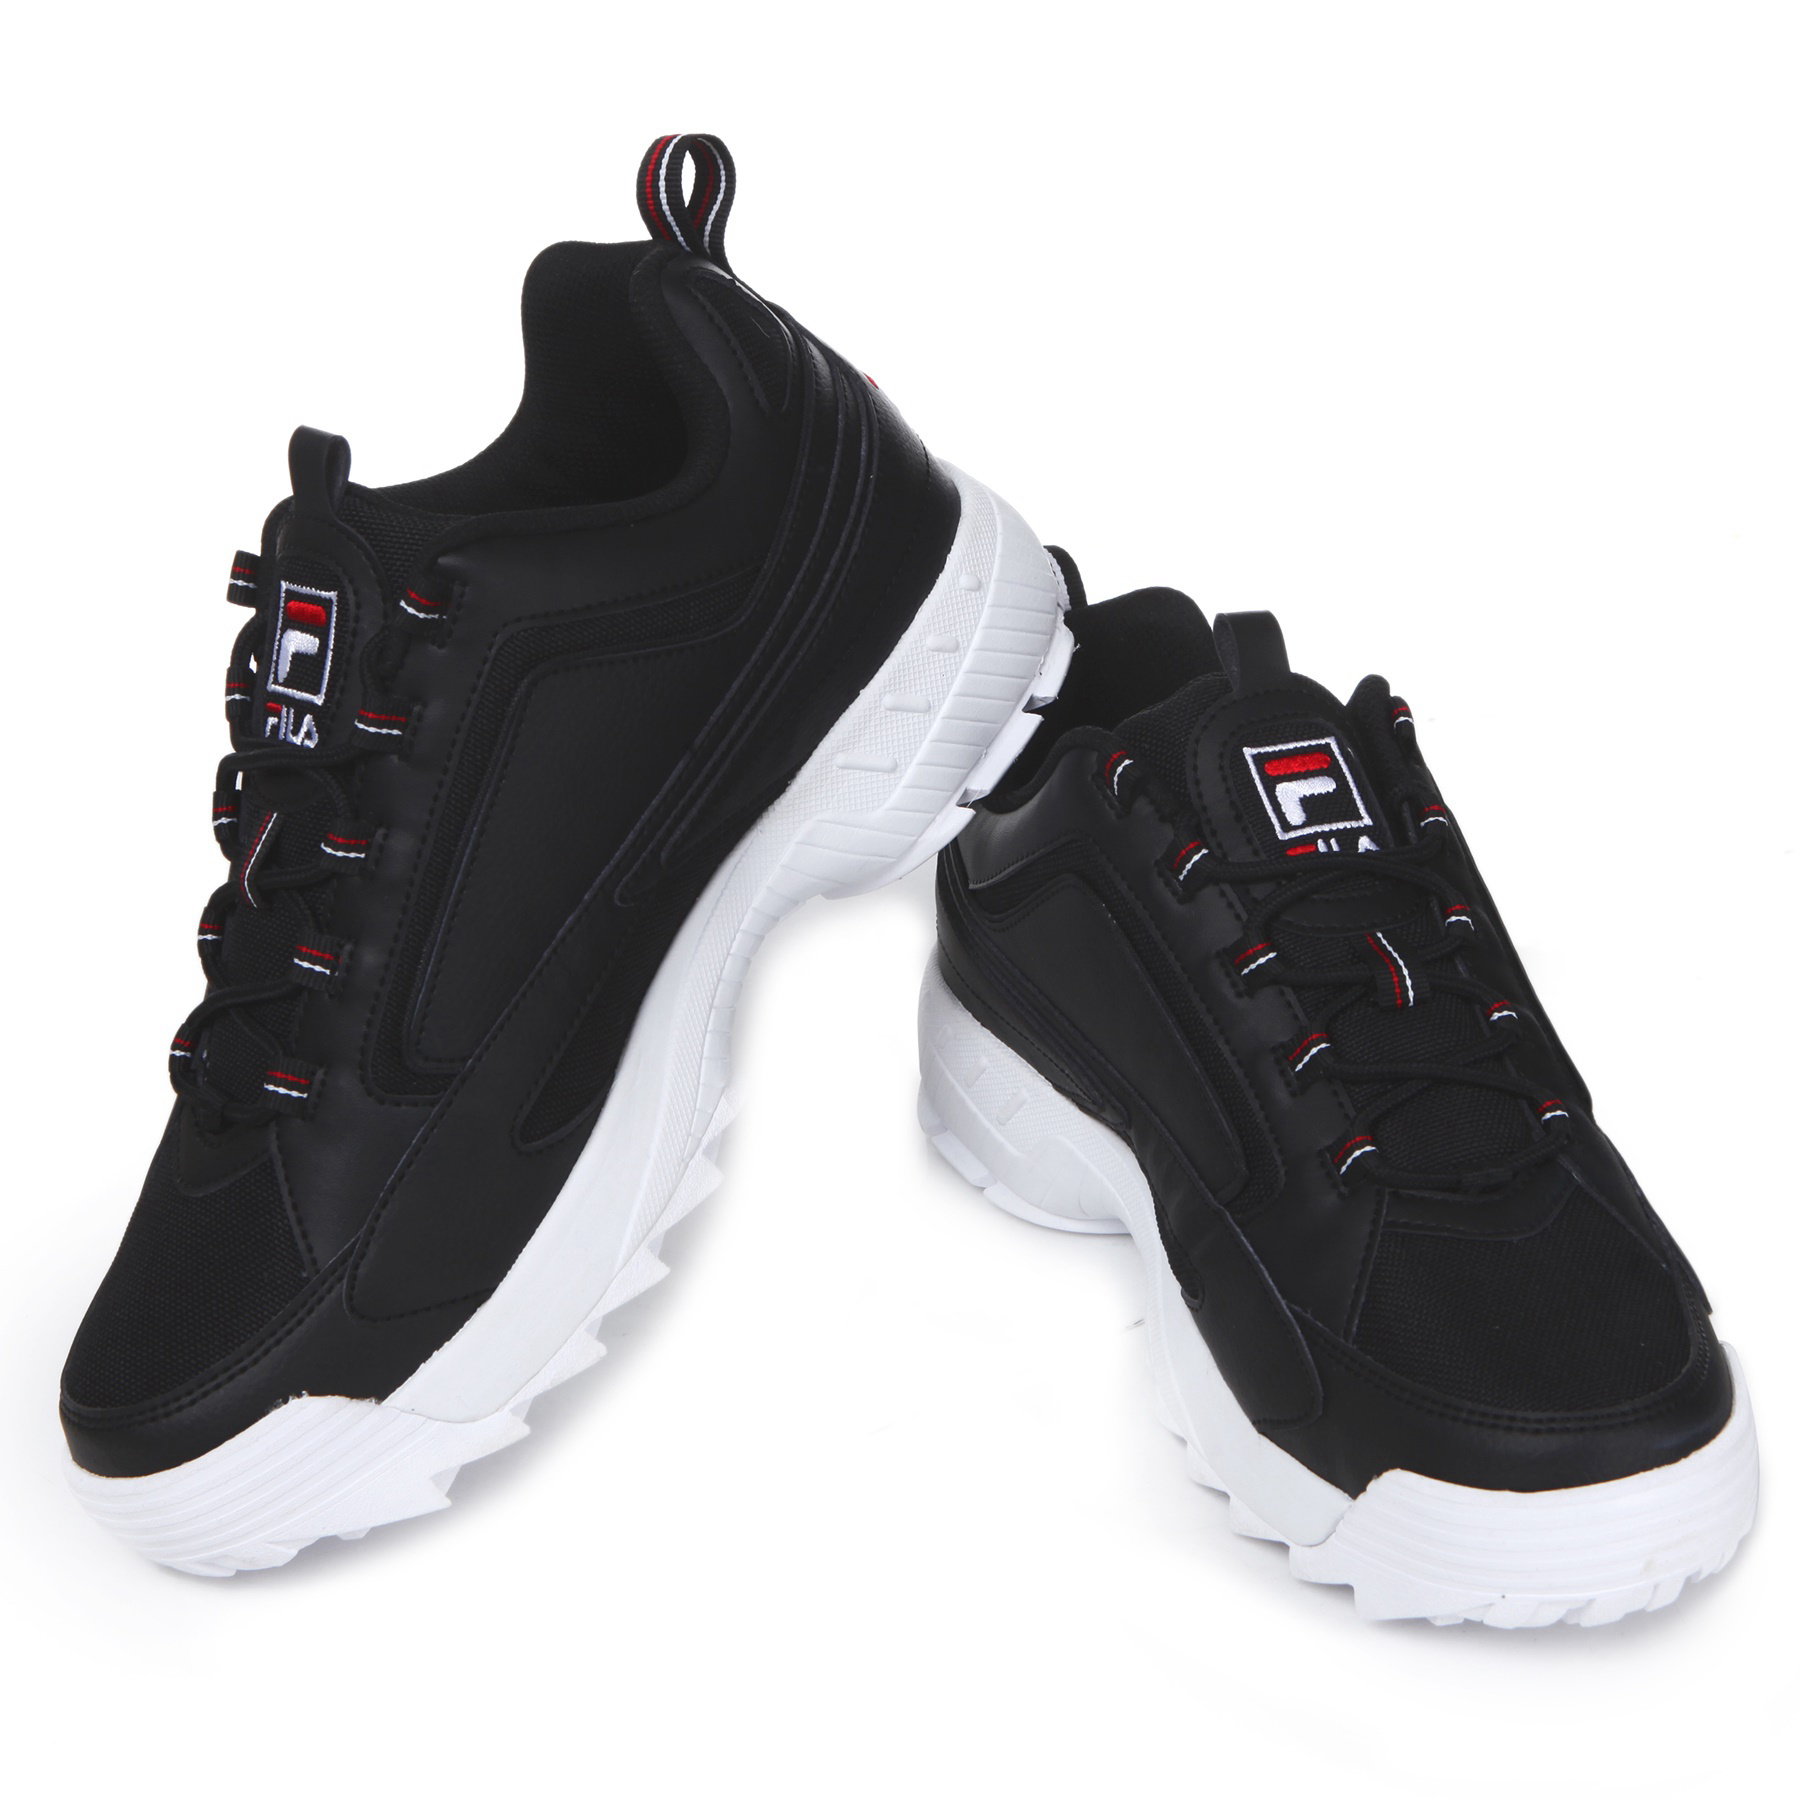 FILA UGLY SOOES 썸네일 이미지 4